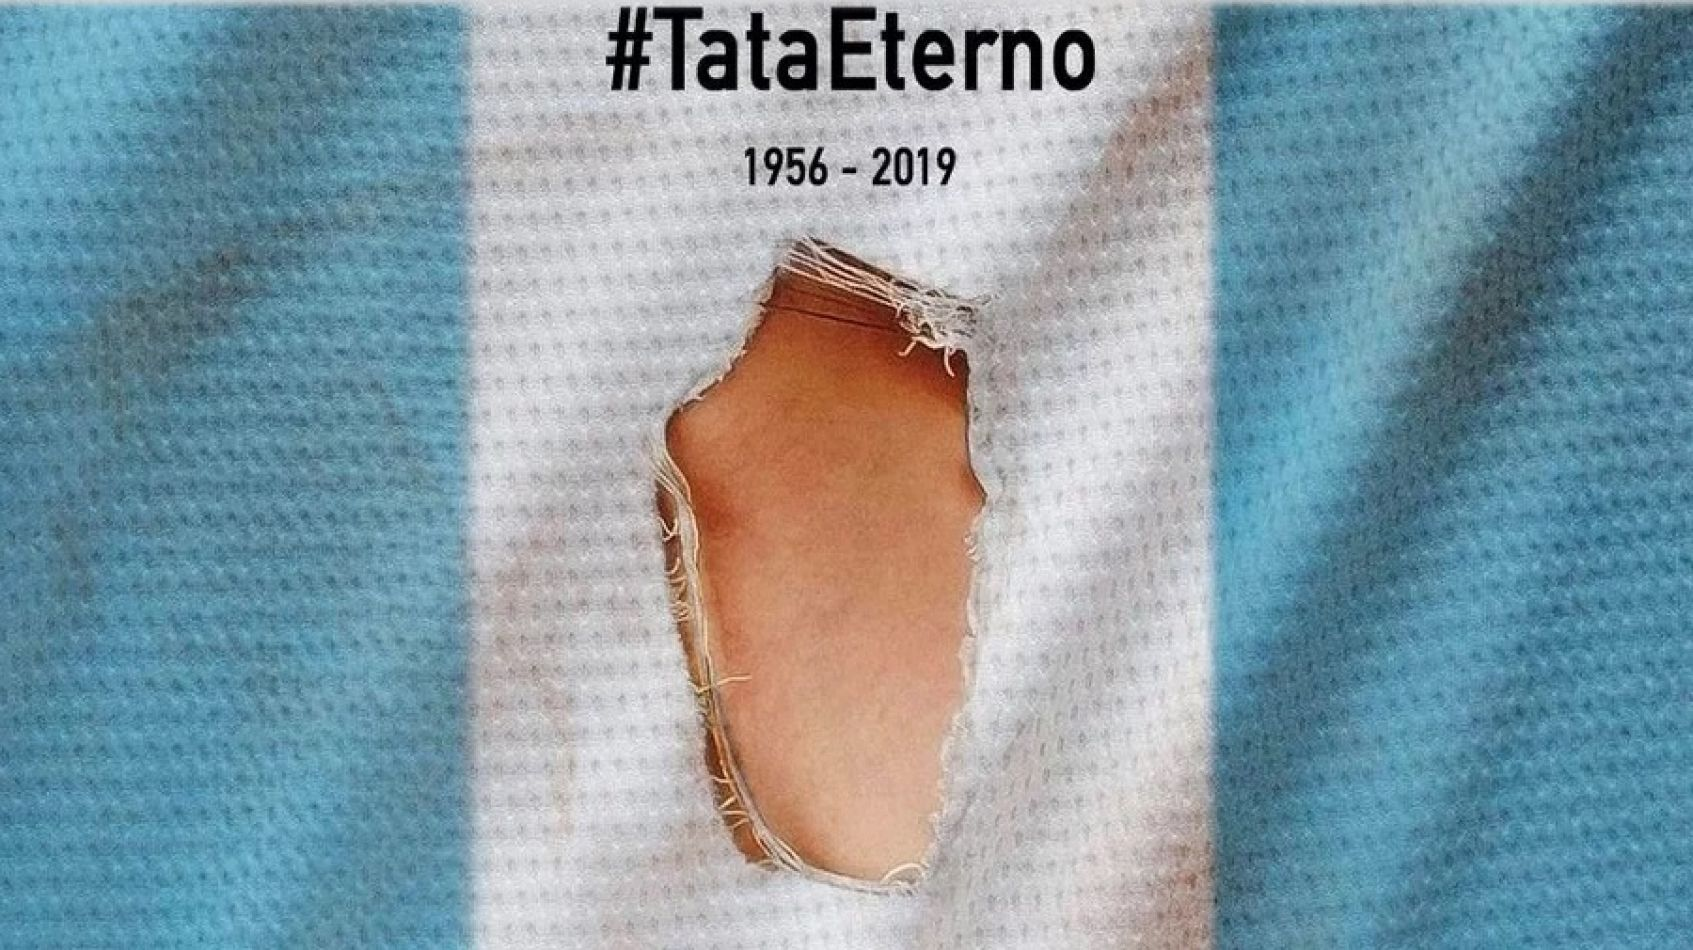 El emotivo homenaje de la Superliga al Tata Brown